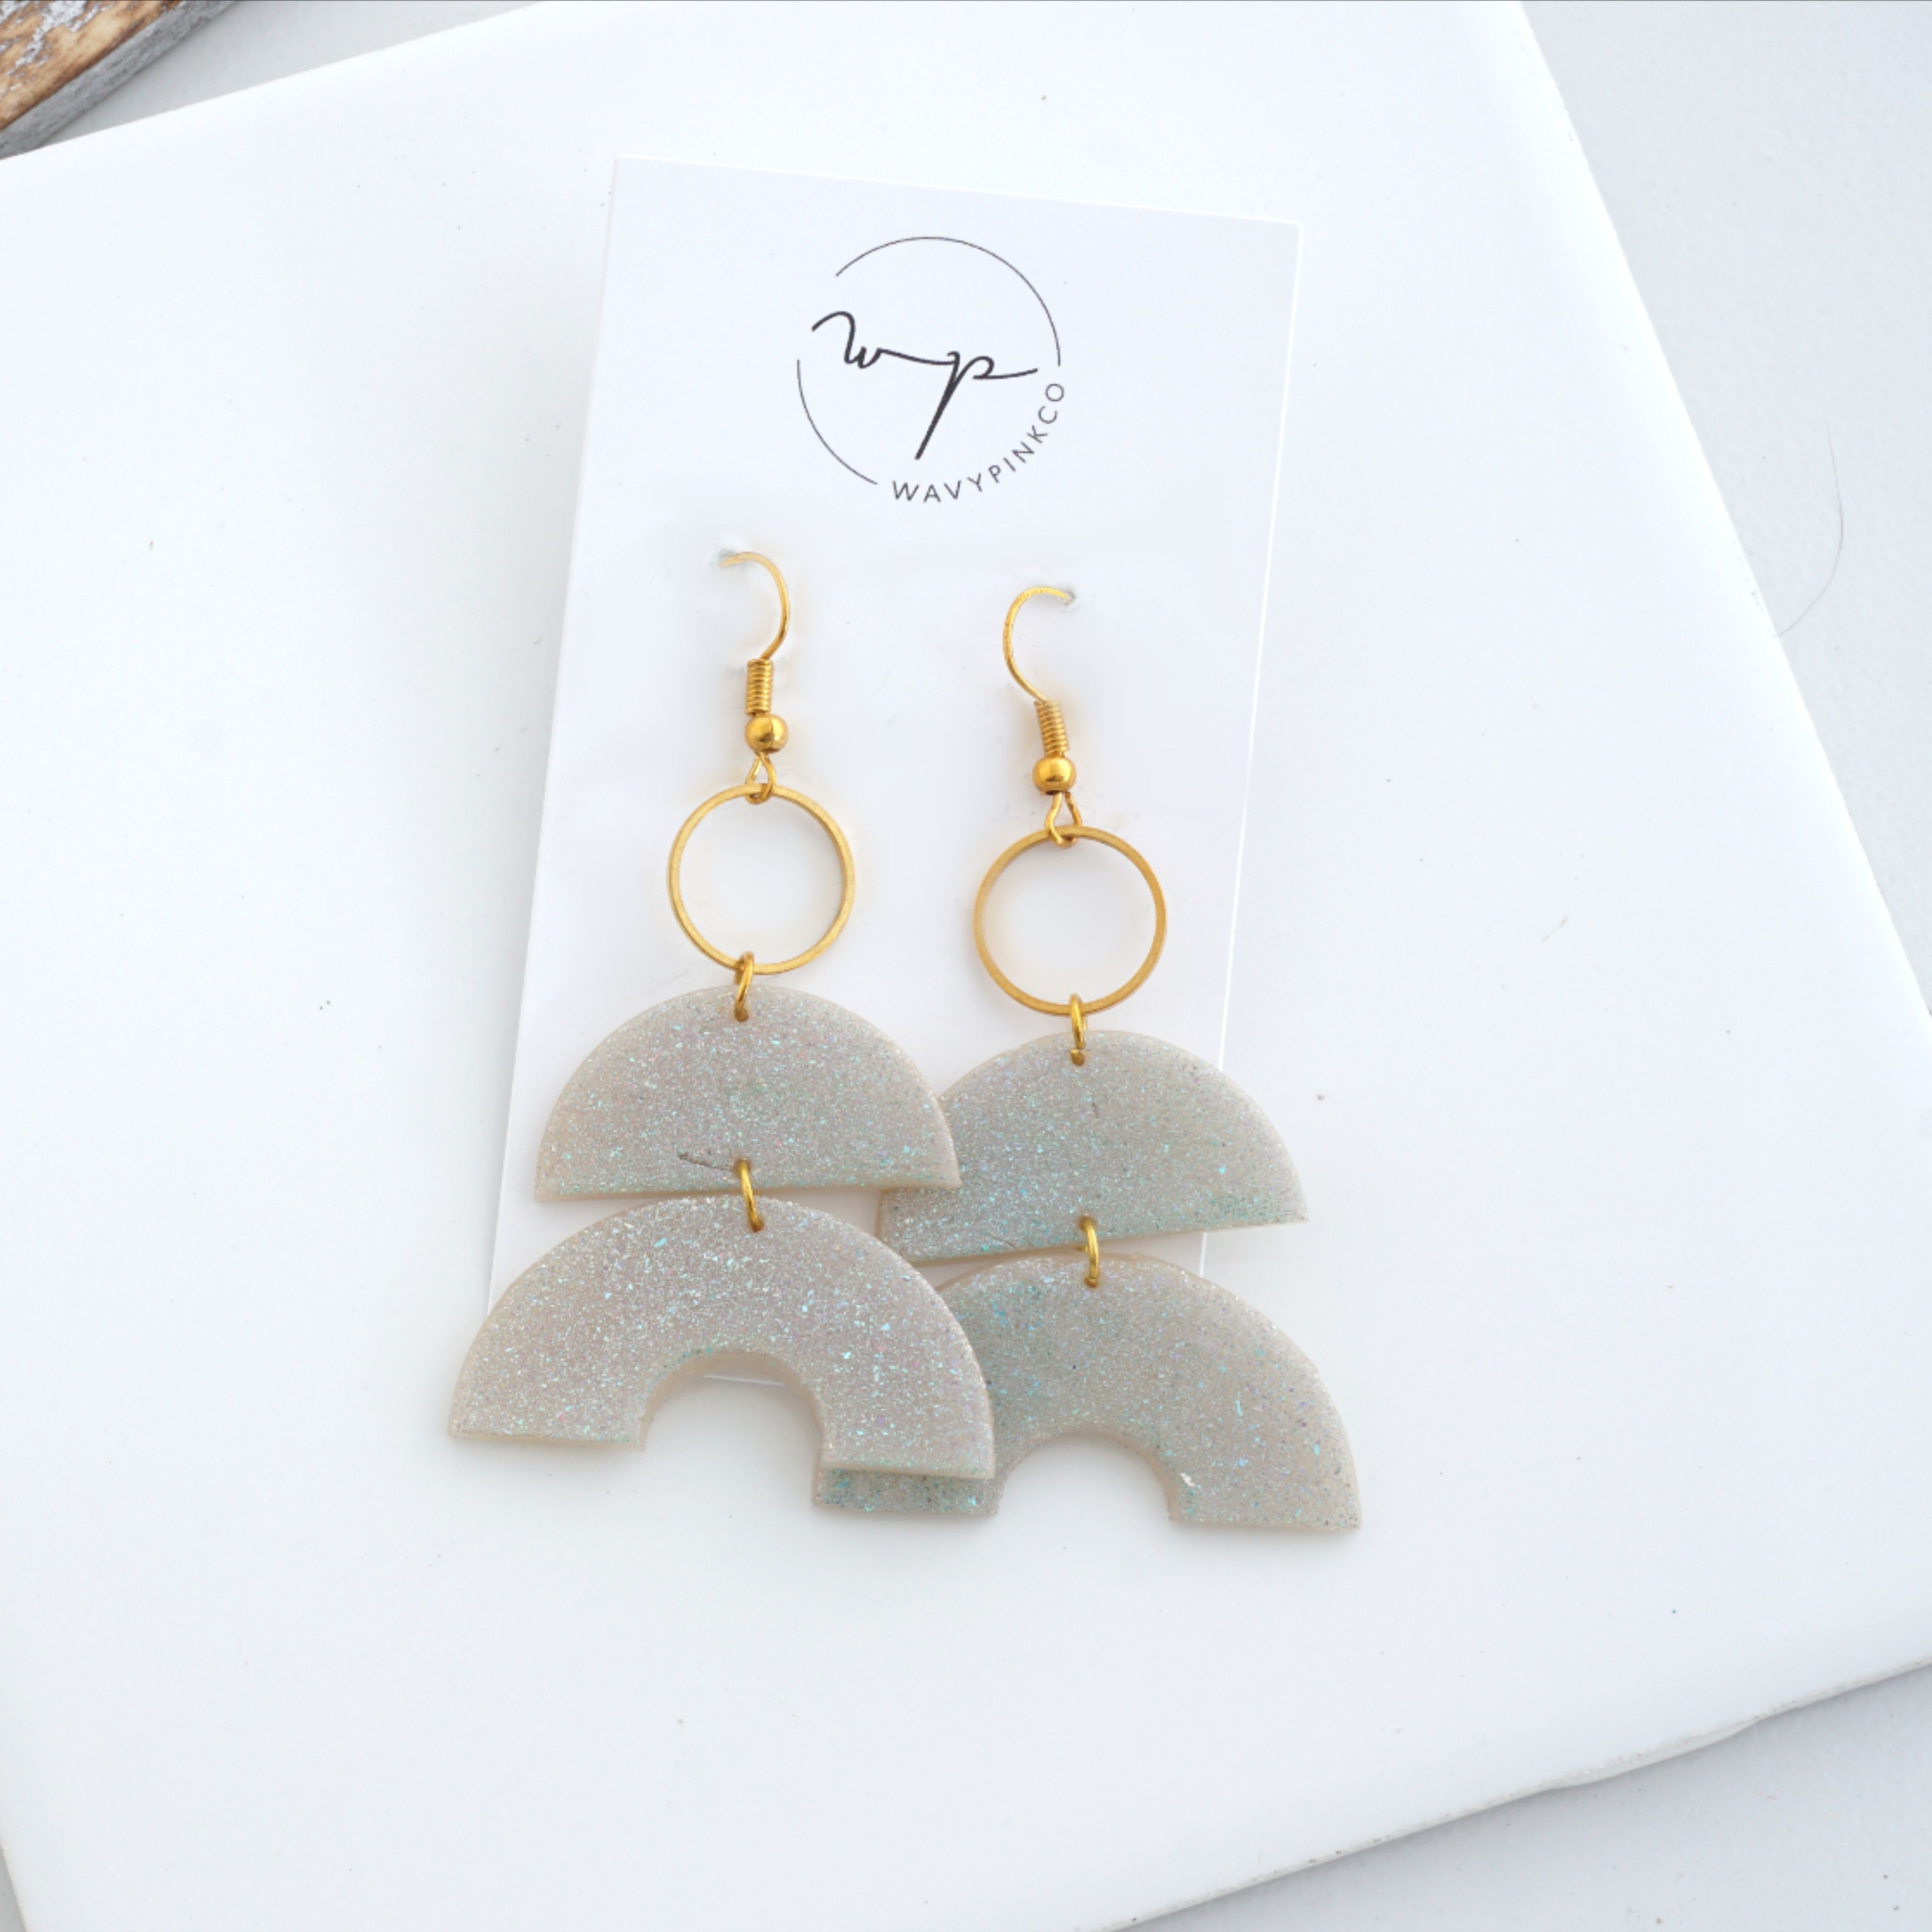 Clay Clay Earrings Sparkle Silver Simple Handmade White Light Weight Unique Earrings Dangle Statement Light Weight Minimal